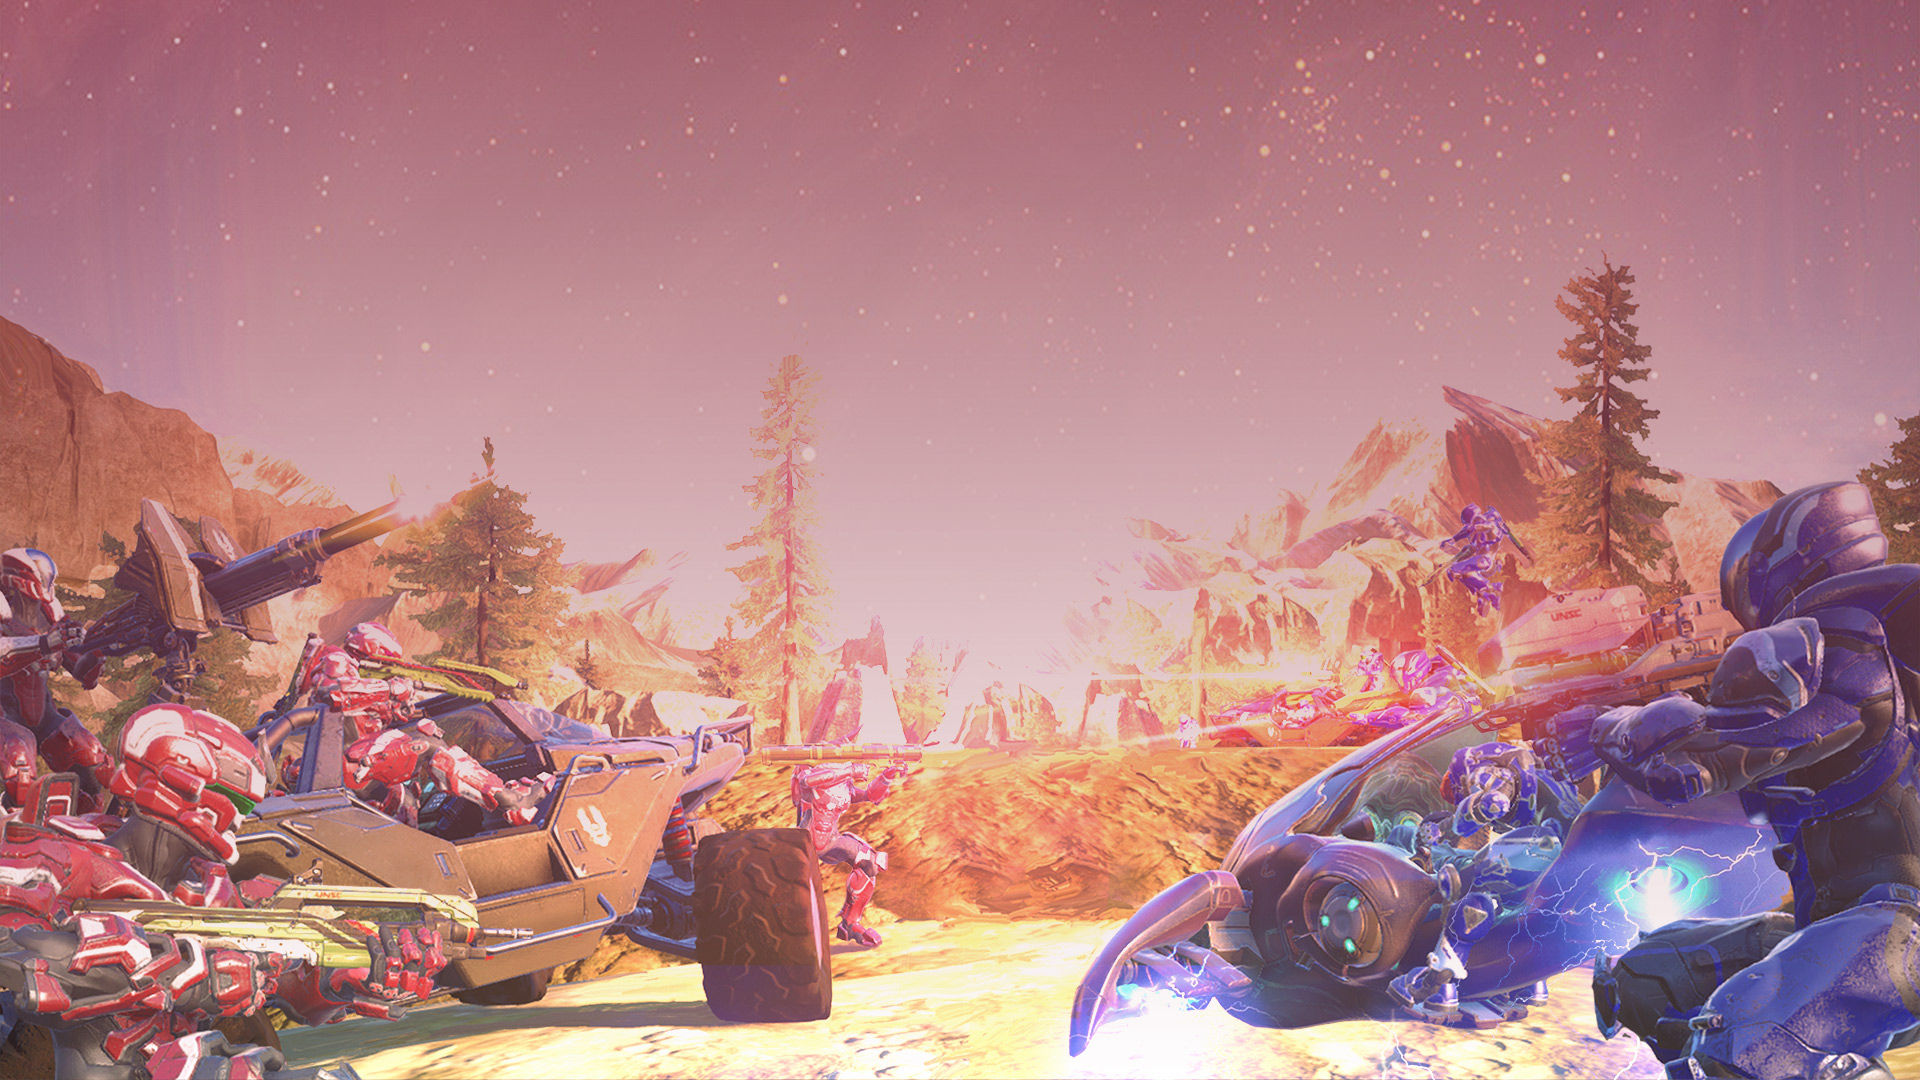 Halo 5's First Free DLC: Big Team Battle, New Weapons, New